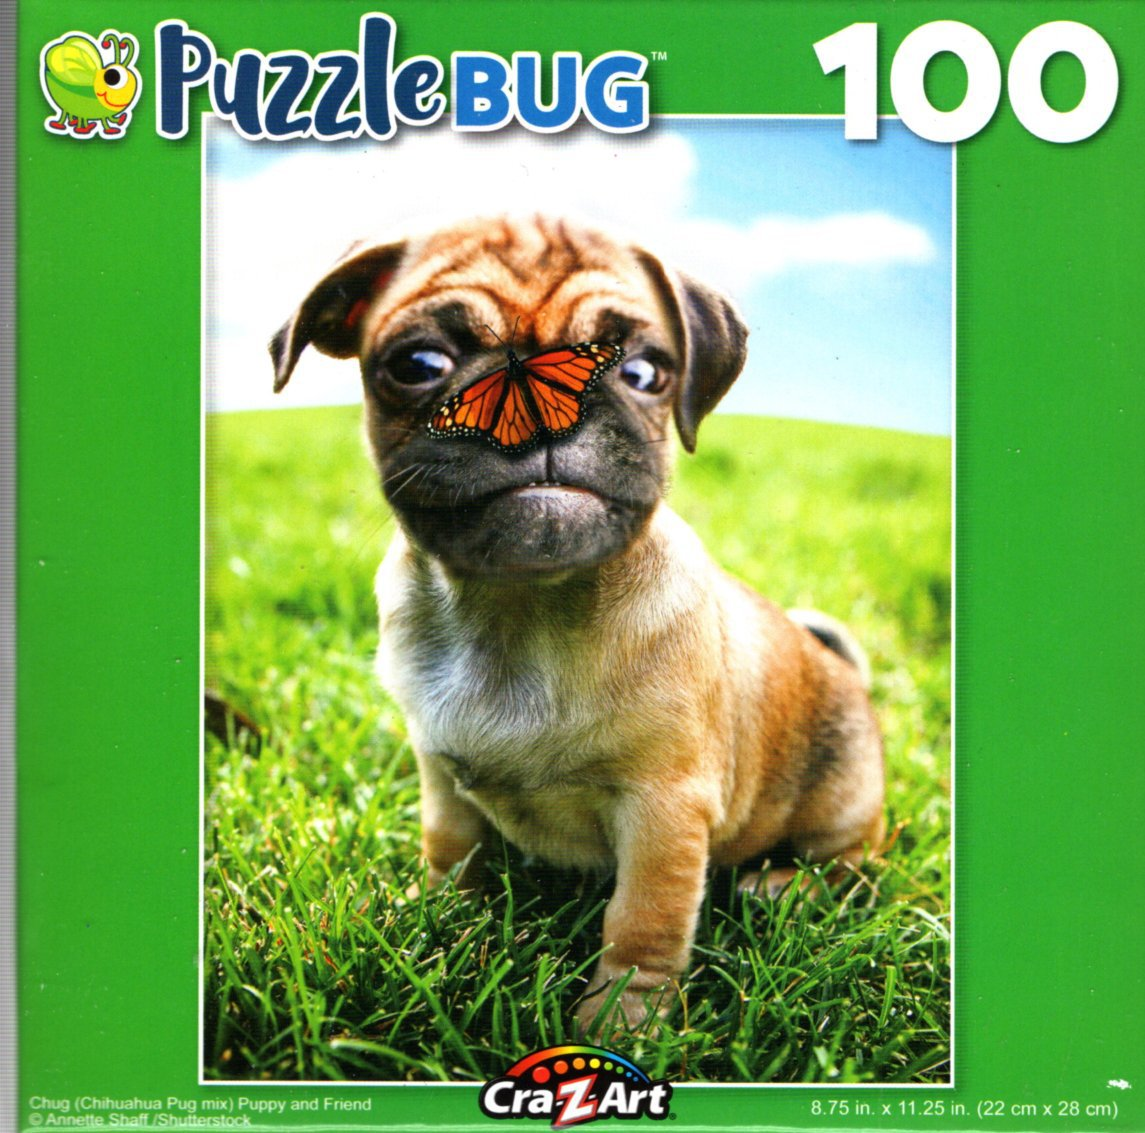 Chug (Chihuahua Pug Mix) Puppy and Friend - 100 Pieces Jigsaw Puzzle